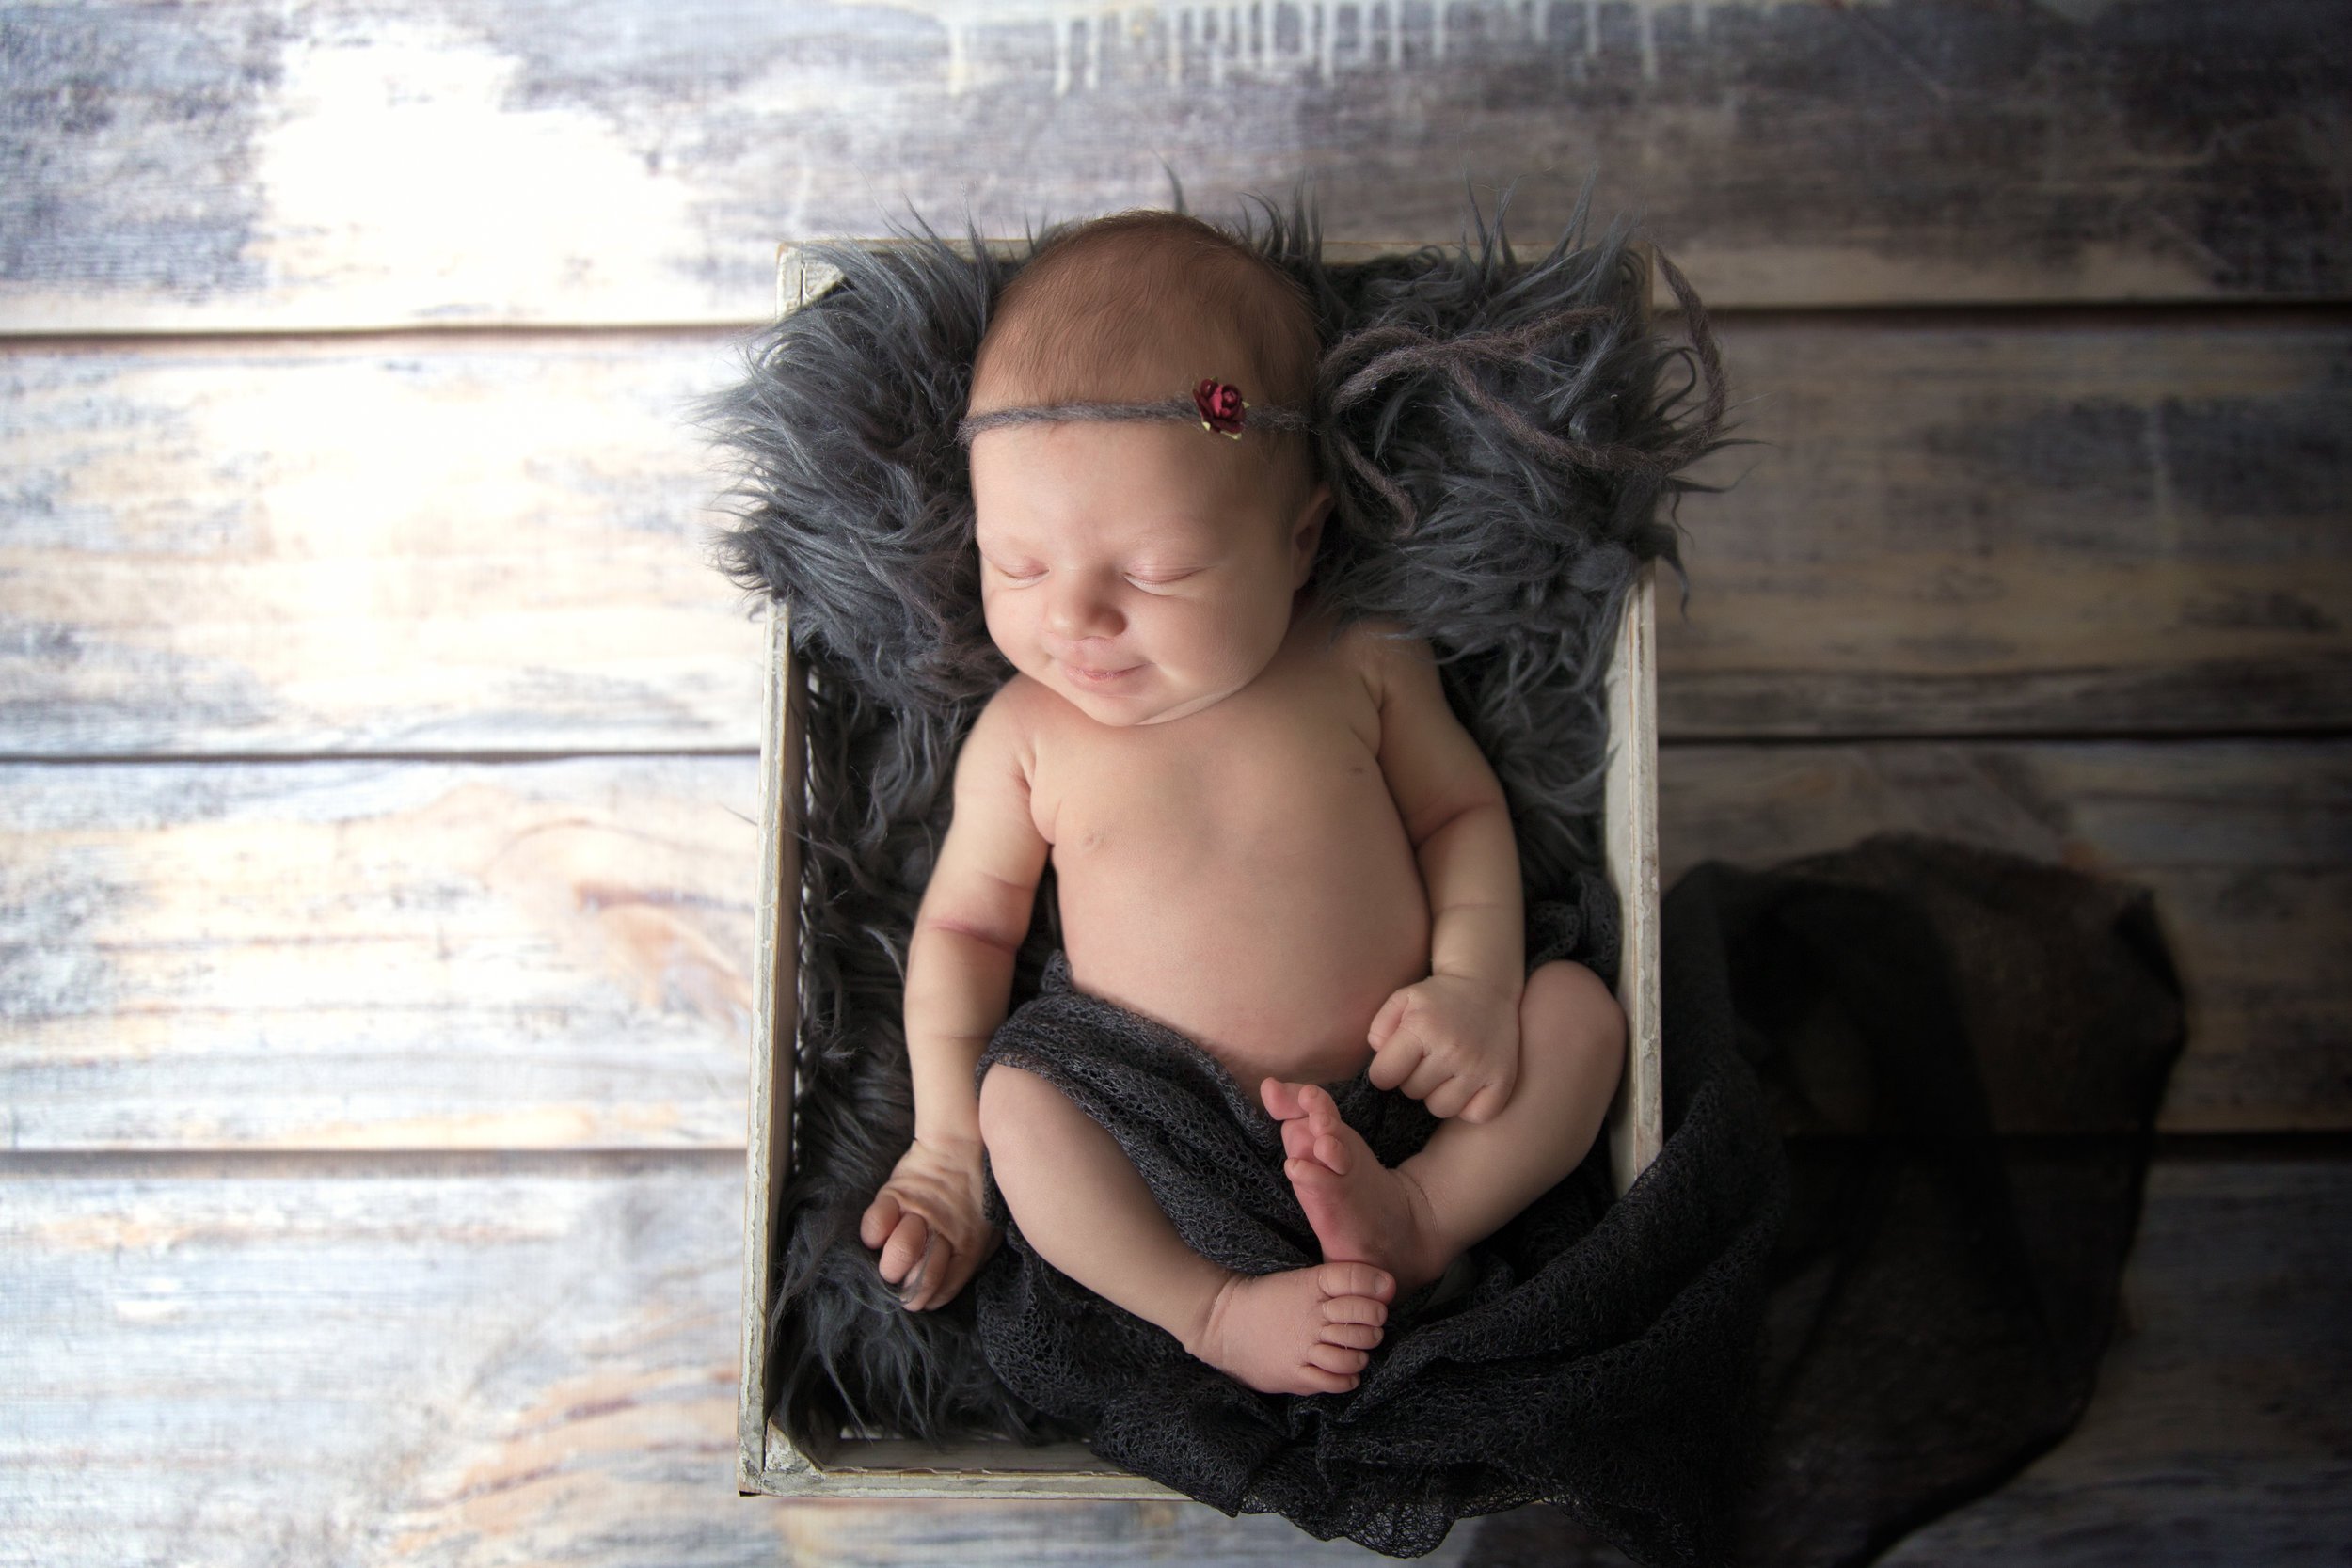 Smiling newborn baby girl in a crate - Calgary newborn photographer - Milashka Photography